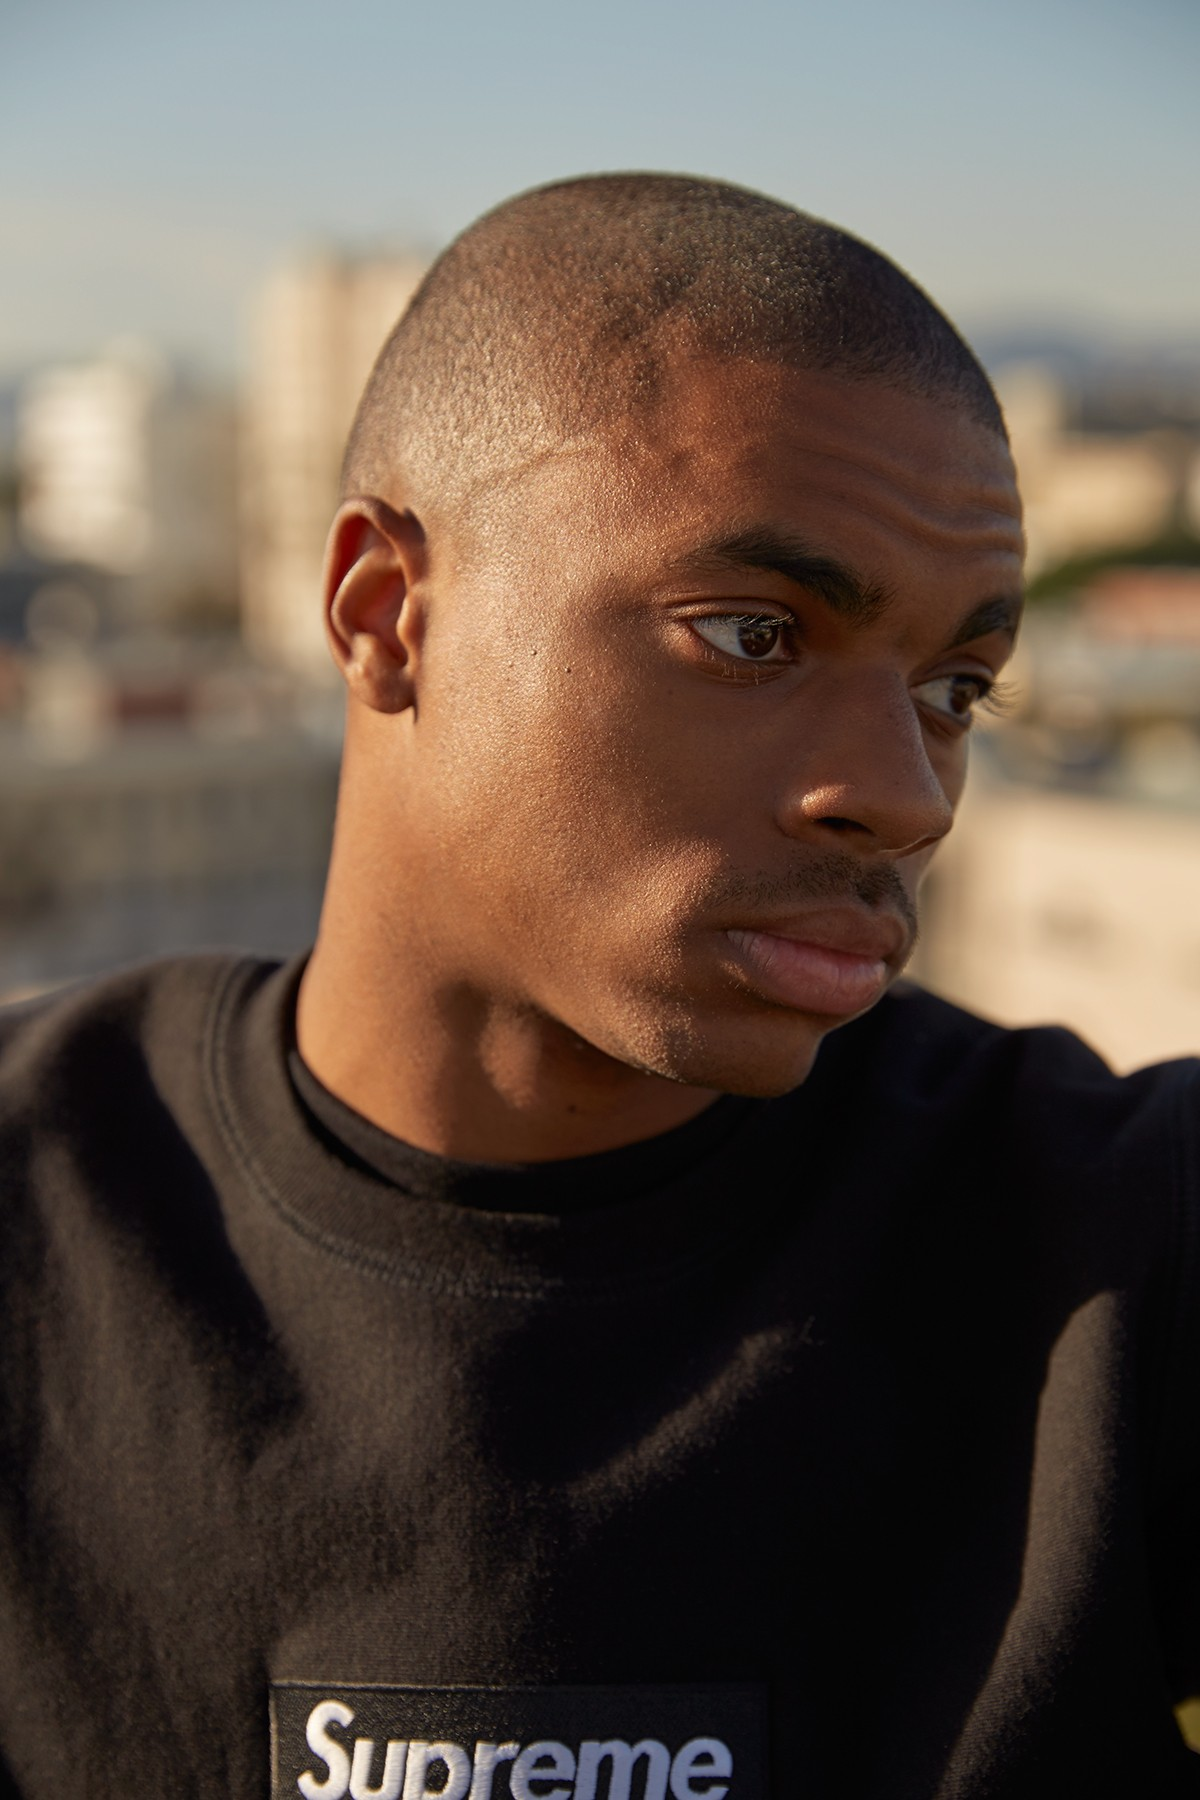 Rapper Vince Staples just wants to have fun at the Royal Oak